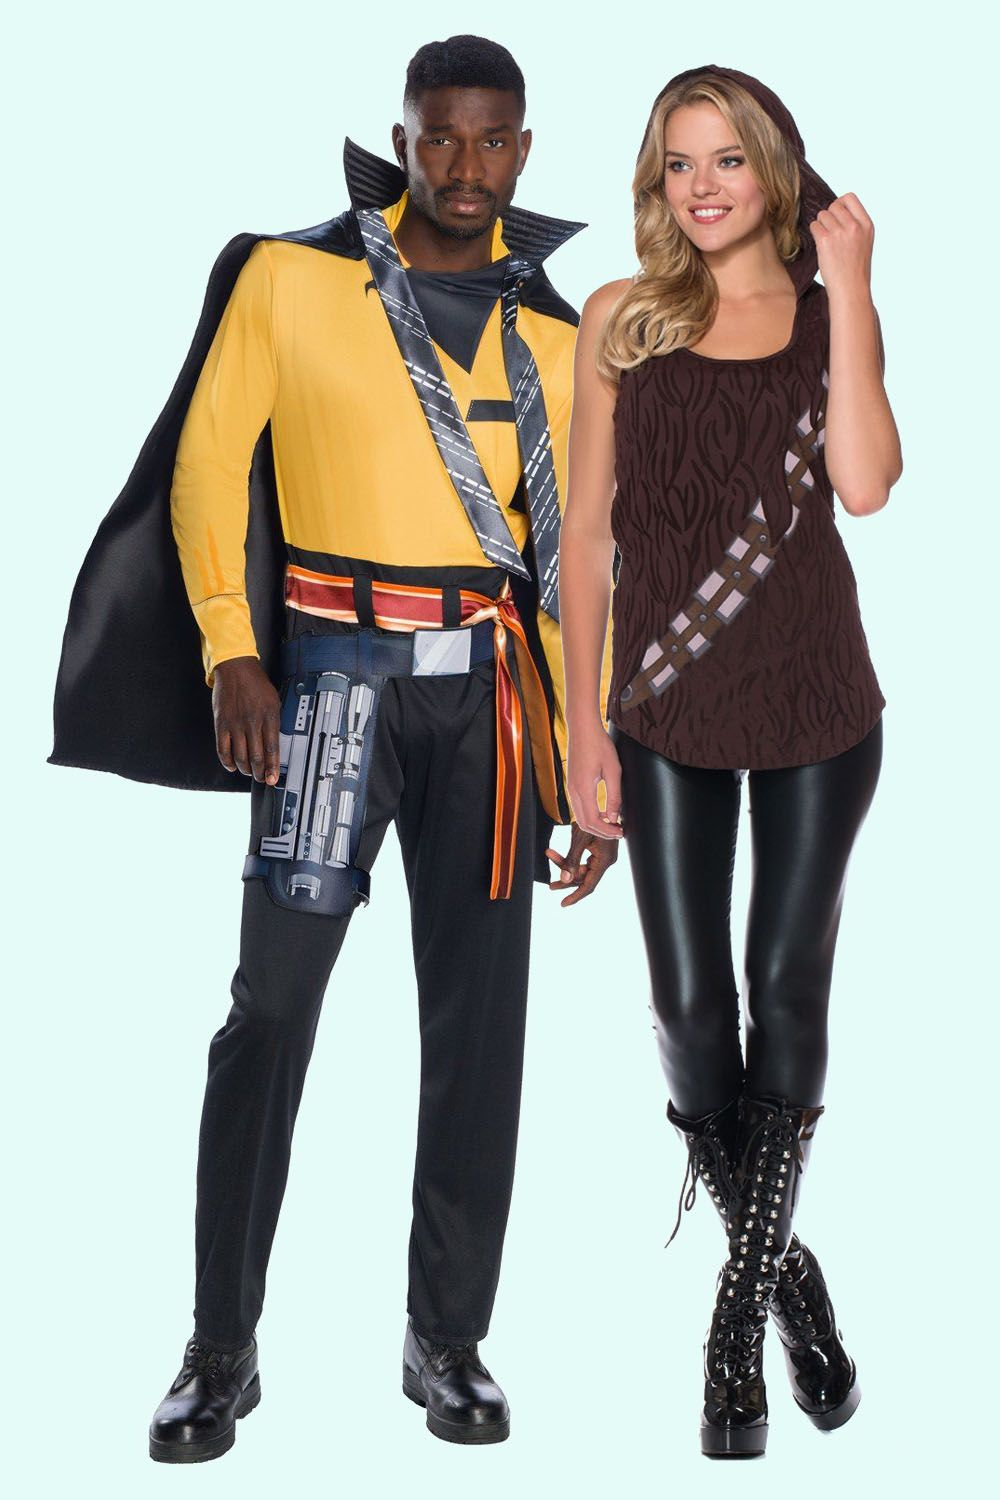 Halloween Costumes for Couples  sc 1 st  Good Housekeeping & 50+ Cute Halloween Costumes for Couples 2018 - Best Ideas for ...